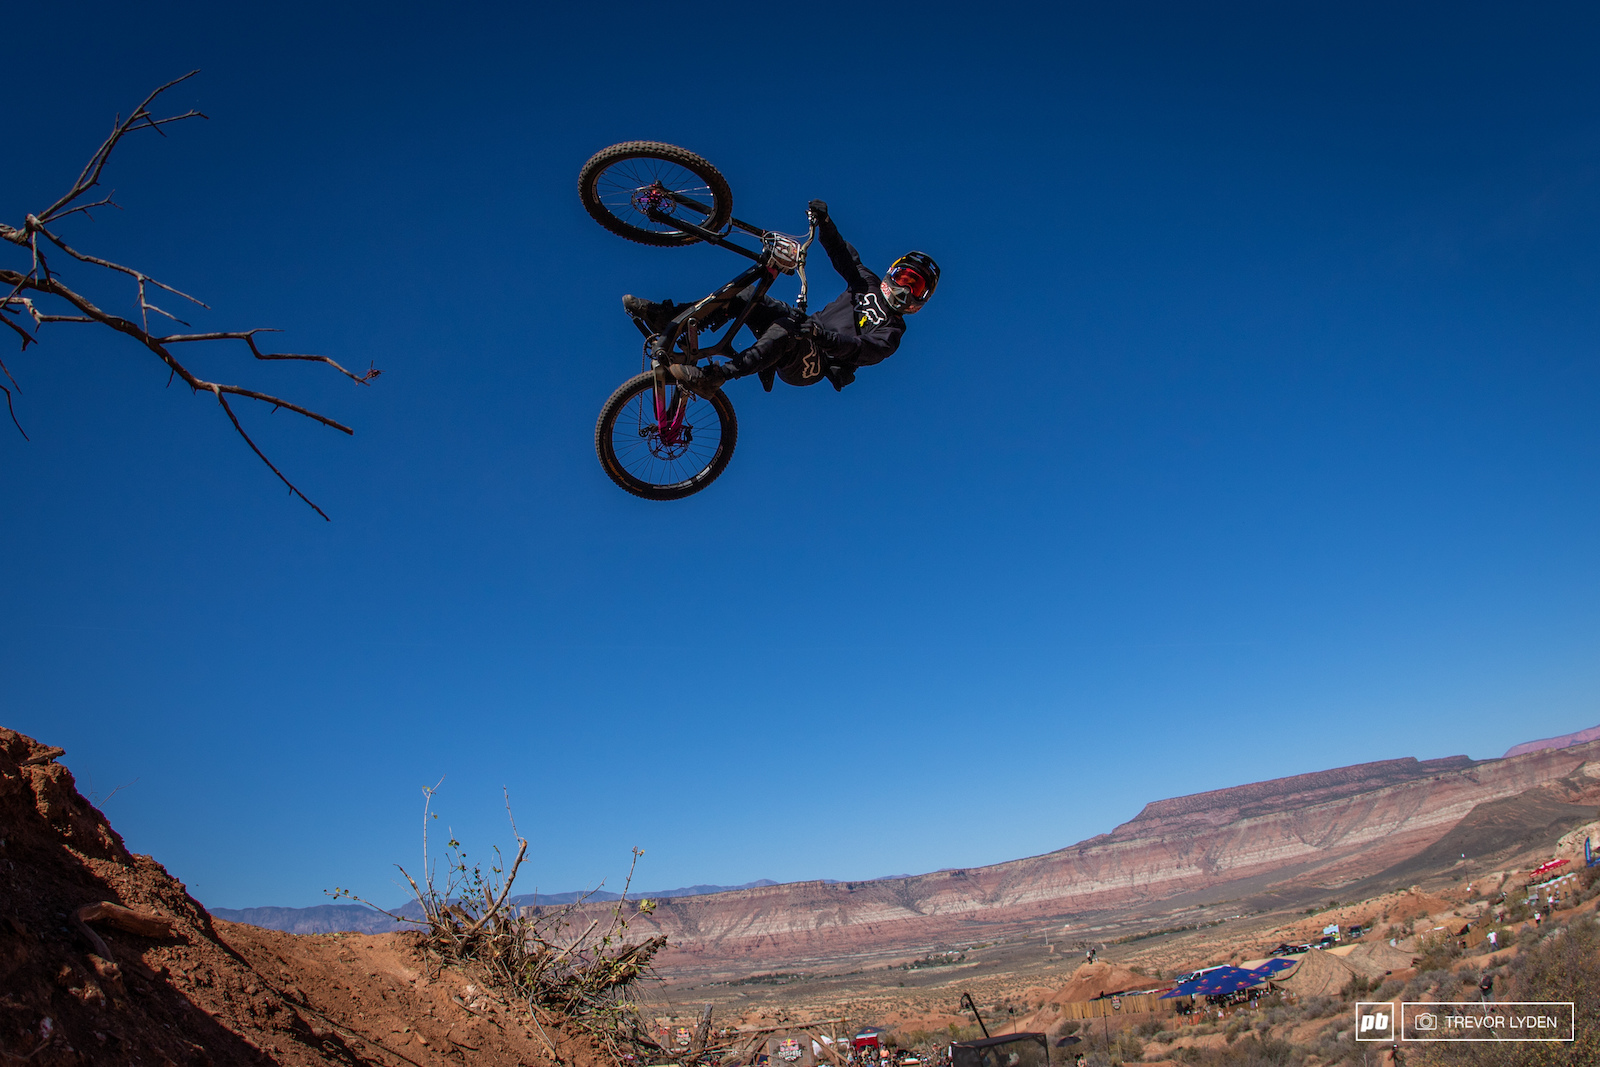 Andreu put down one of the best rampage runs we ve seen in a while and secured a second place.